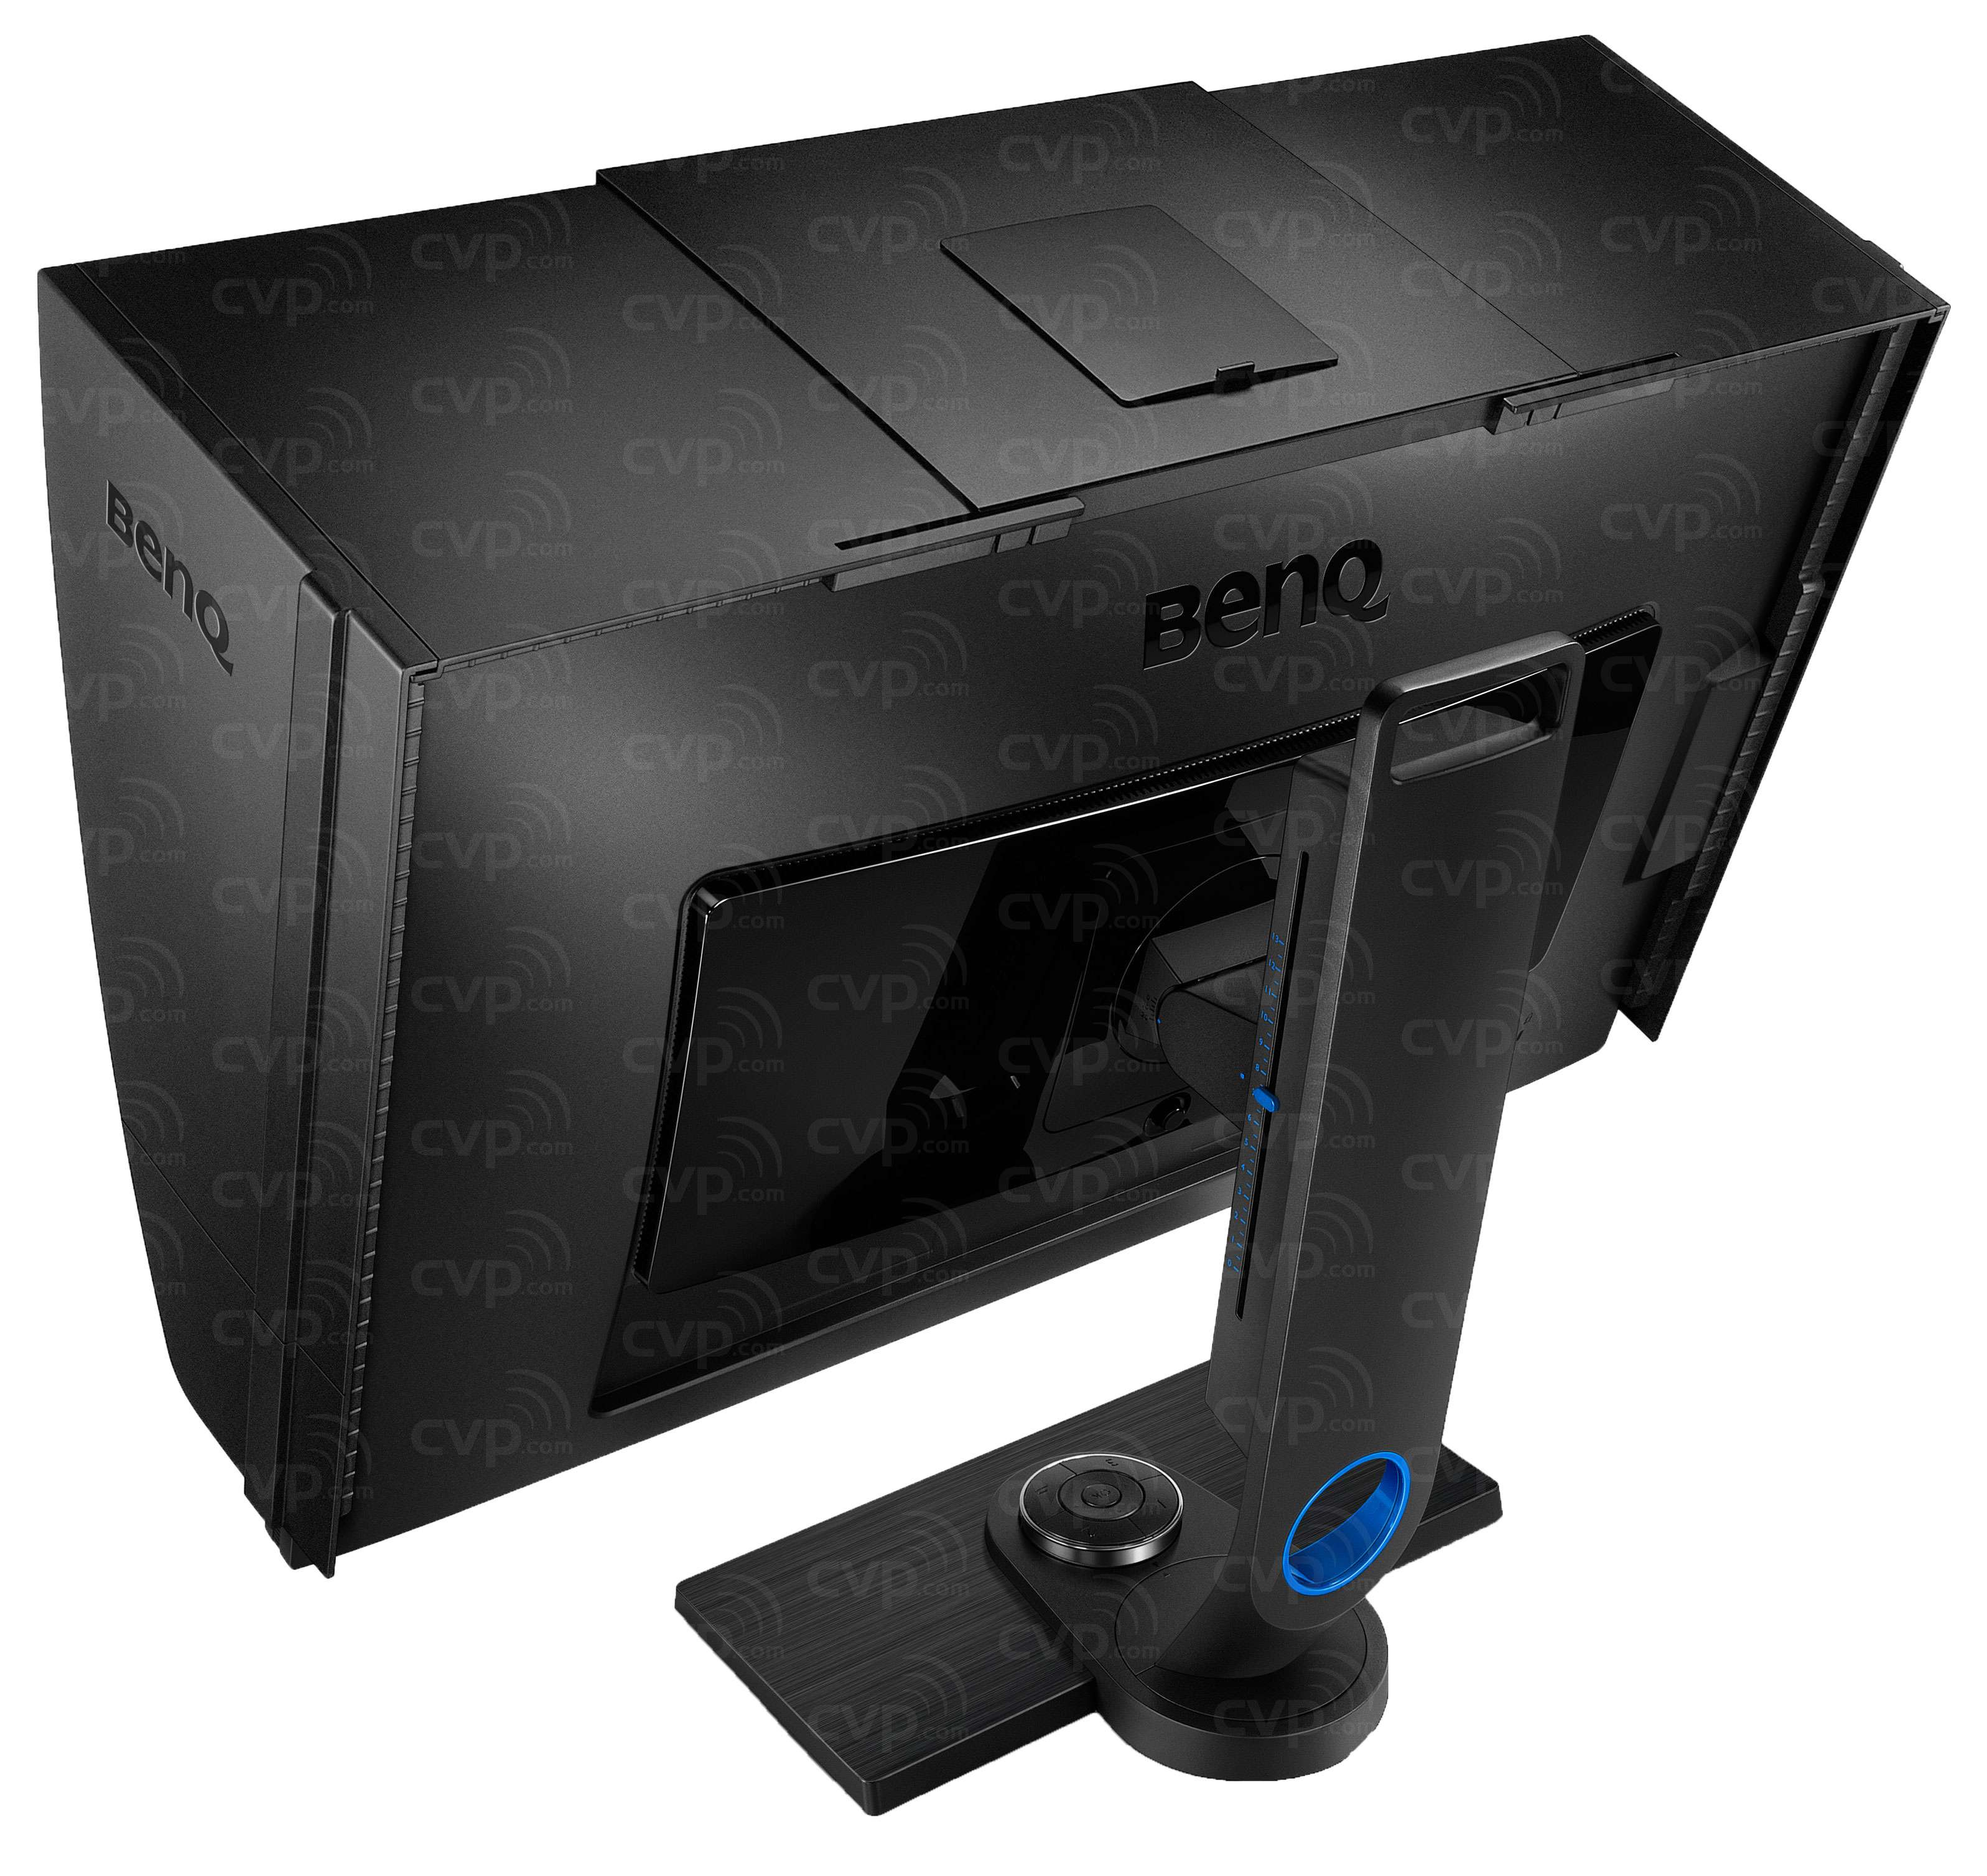 SW2700PT Pro 27in Monitor - Behind Angled Hood